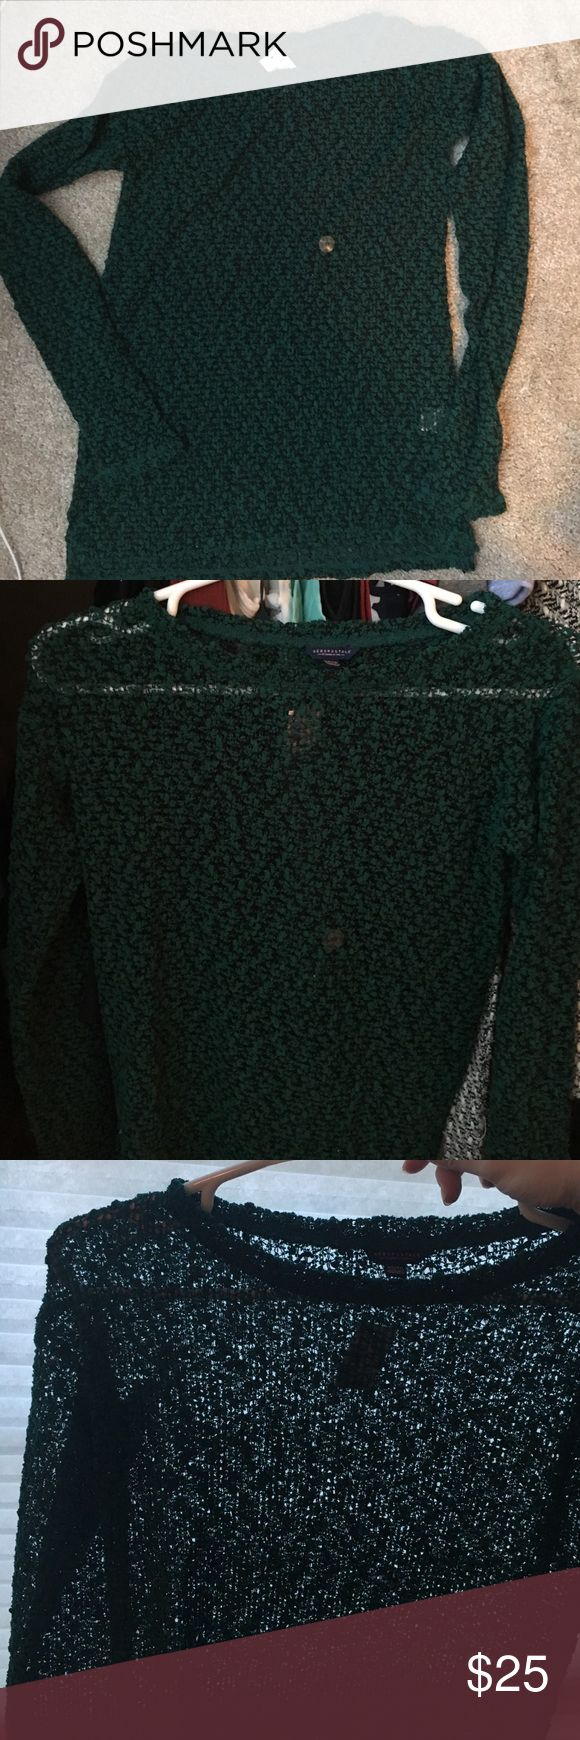 Emerald green and black open knit top Soft emerald and green top, open knit meaning you can see through it (not sheer material, just woven), really cute with a black lace cami under. Good for all seasons. Brand new never worn, size Xs. Aeropostale Tops